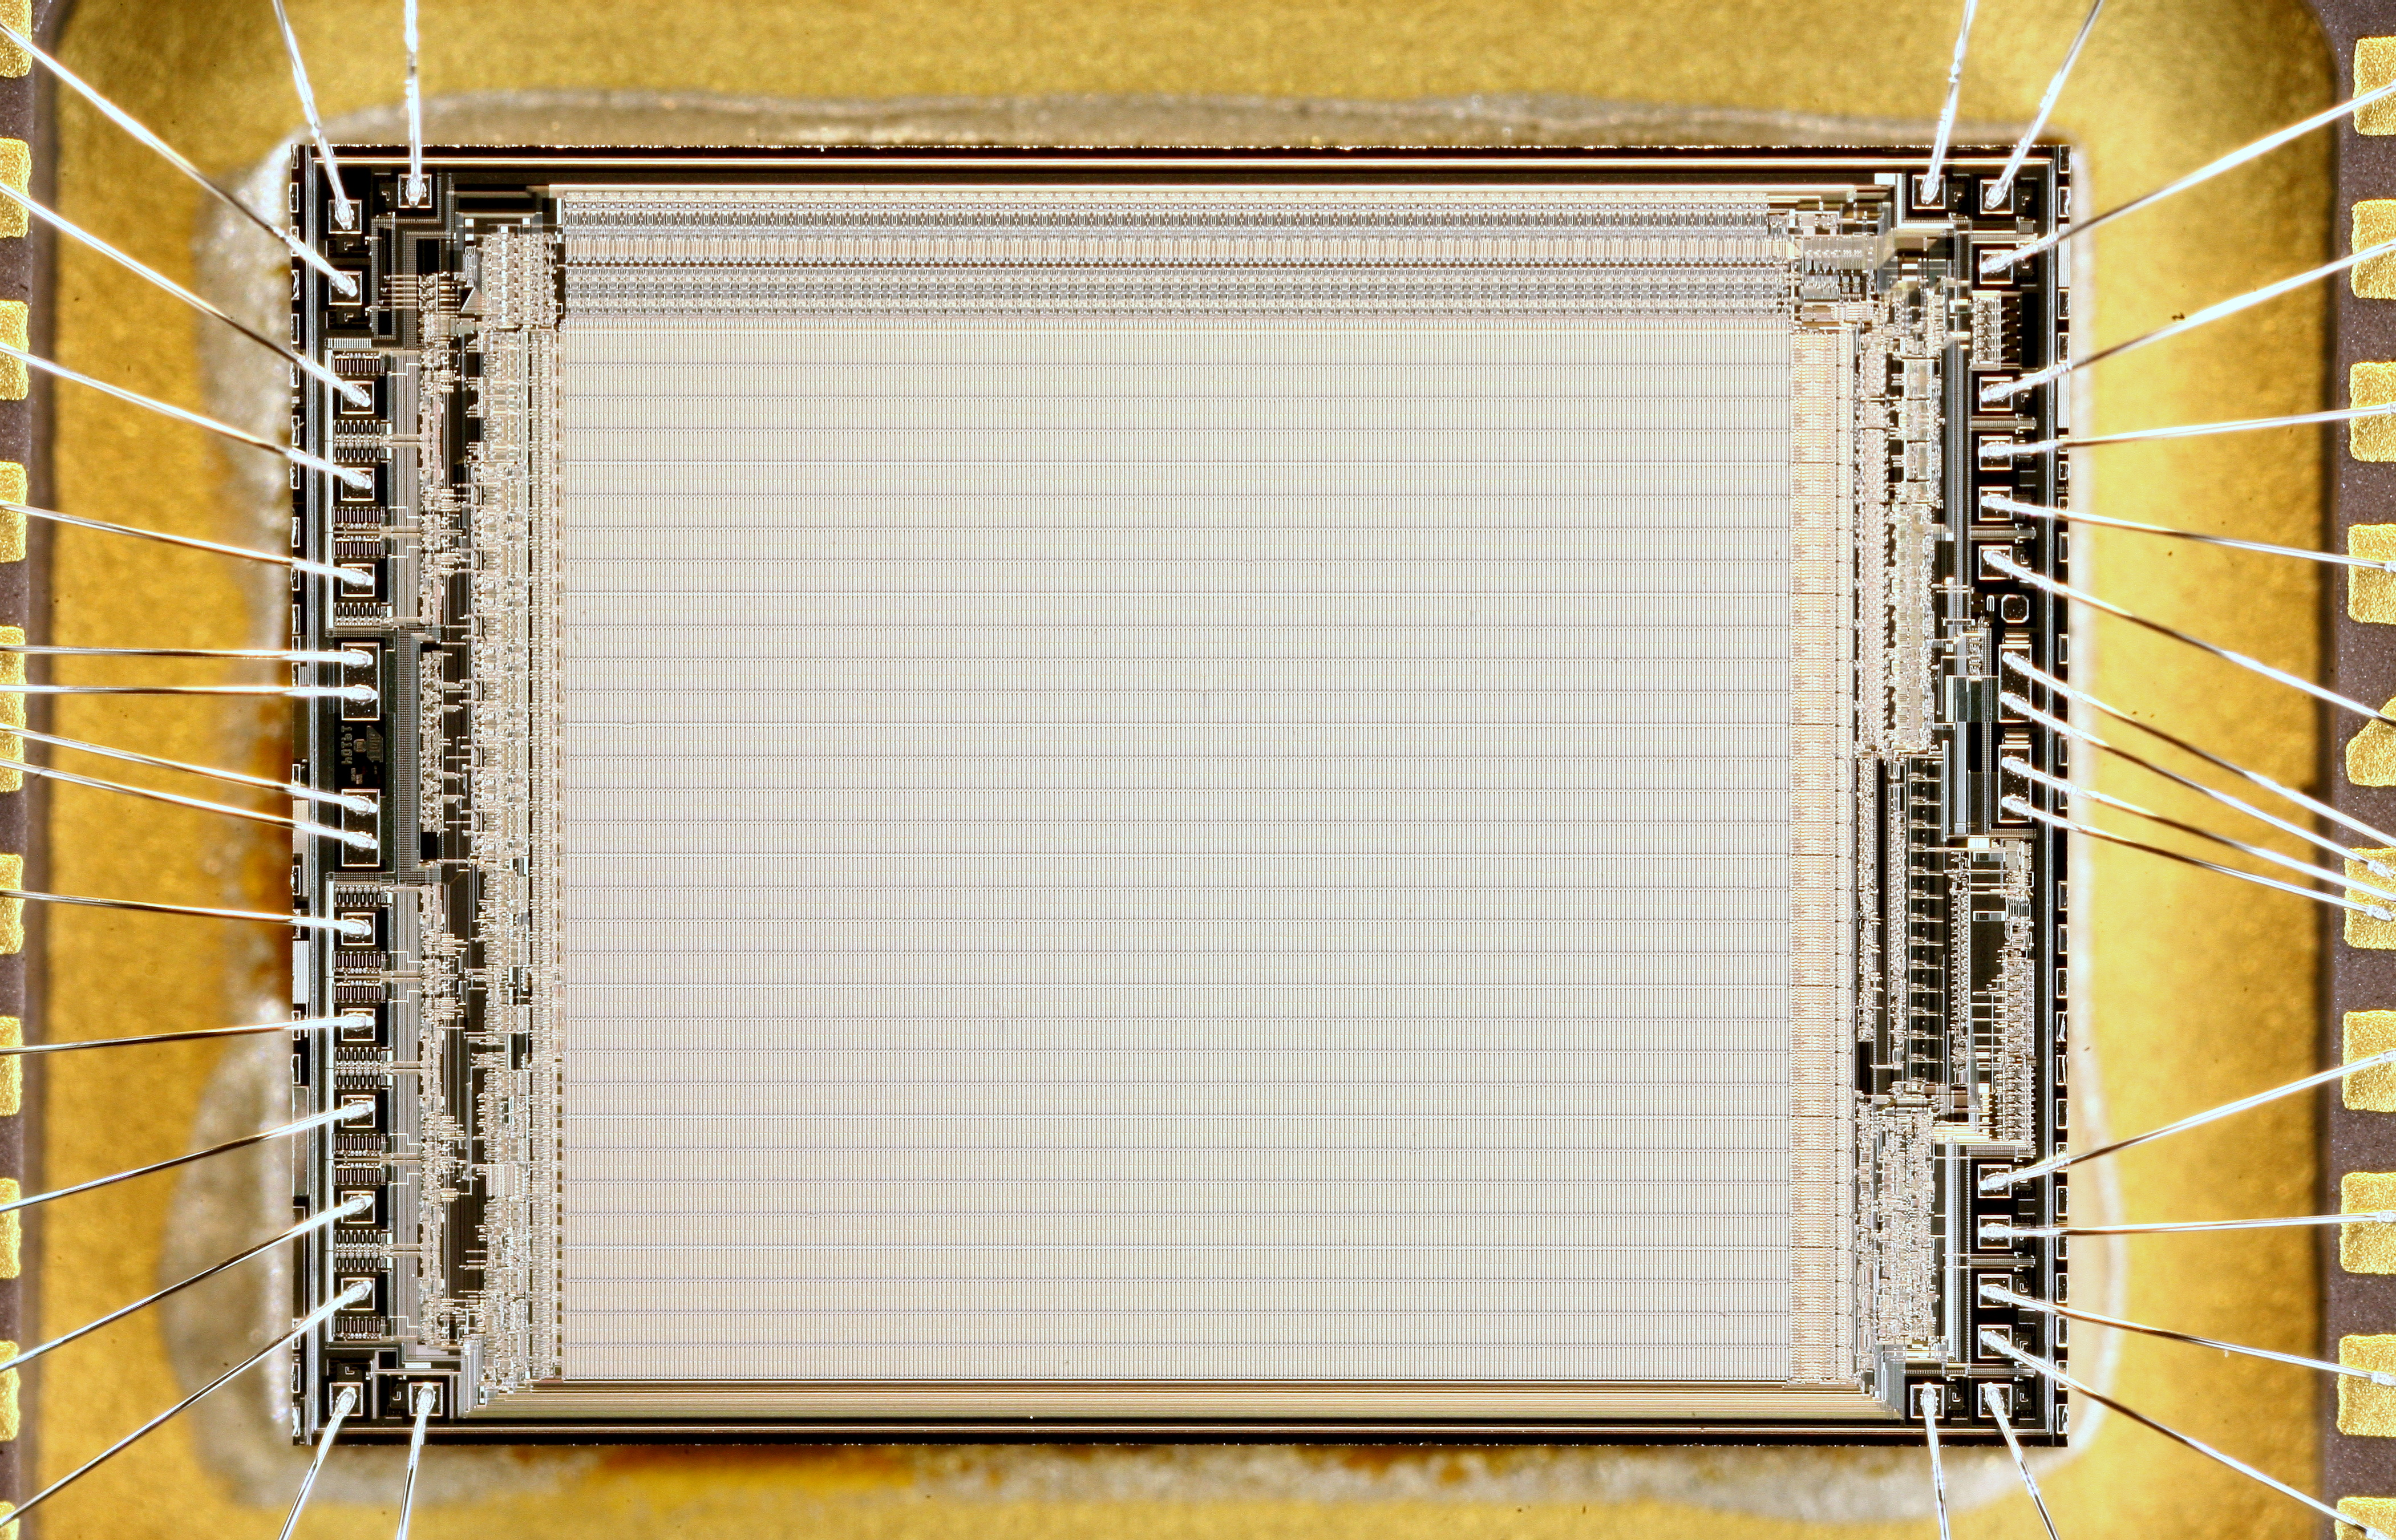 Atmel_28HC265_die_photo.jpg